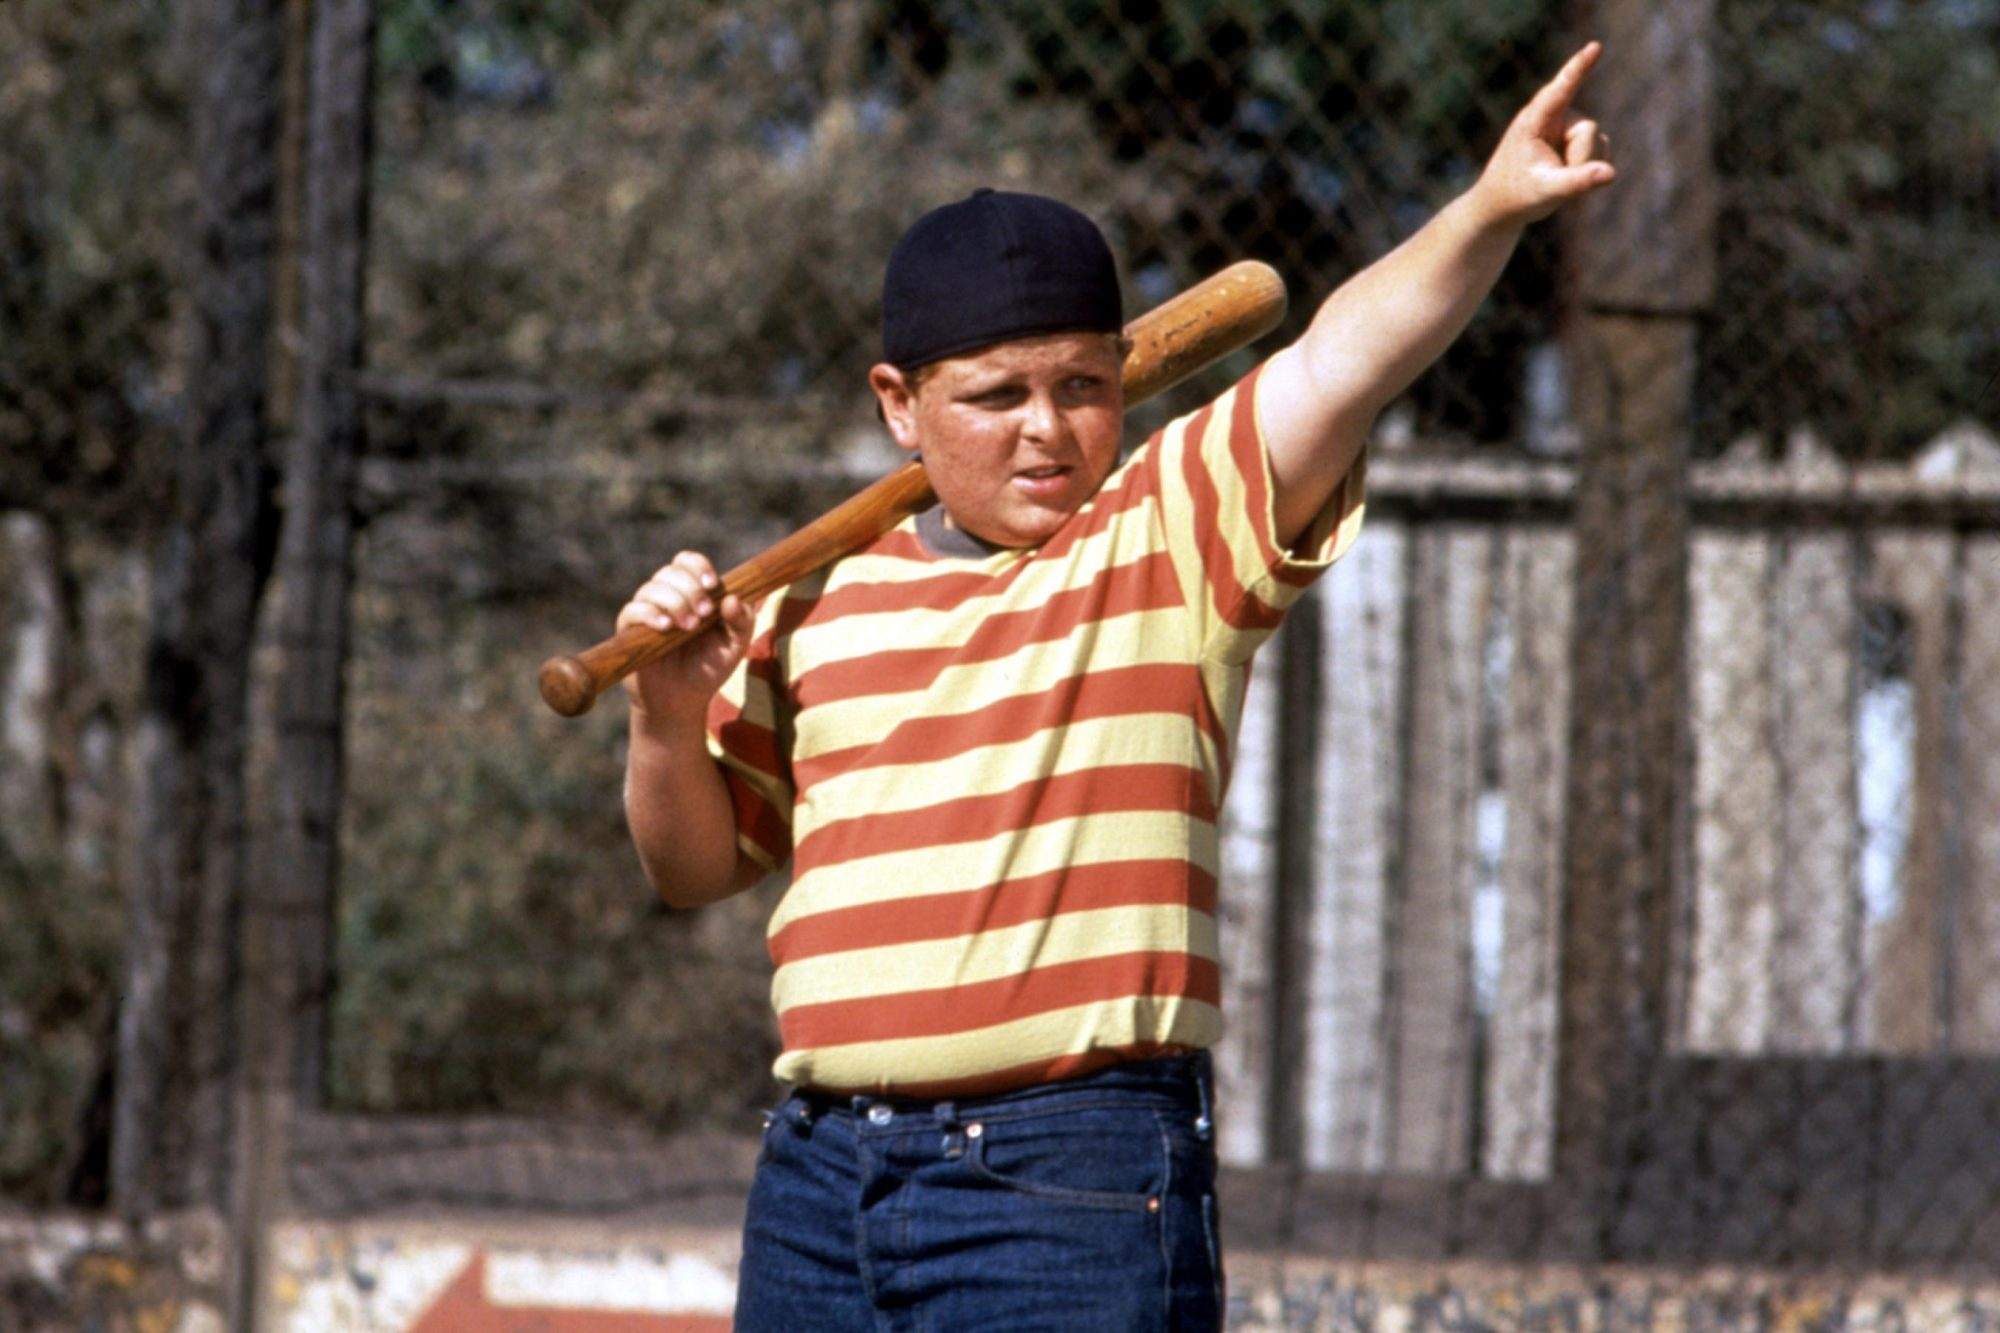 THE SANDLOT, Patrick Renna, 1993, TM and Copyright ©20th Century Fox Film Corp. All rights reserved.